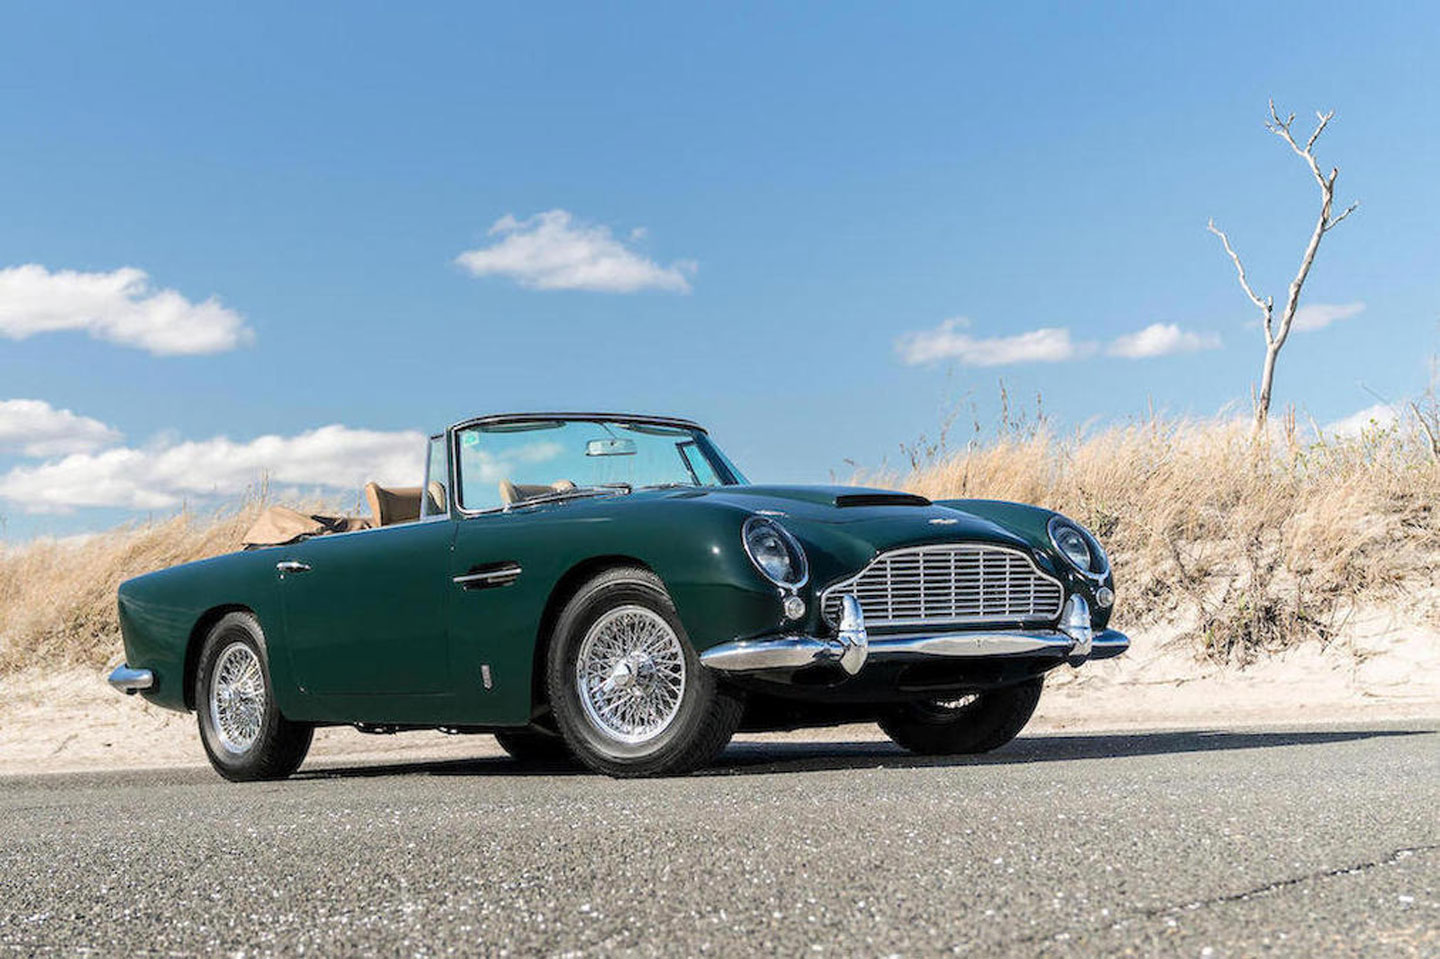 Top 3 Places to Sell Your Classic Car to International Buyers